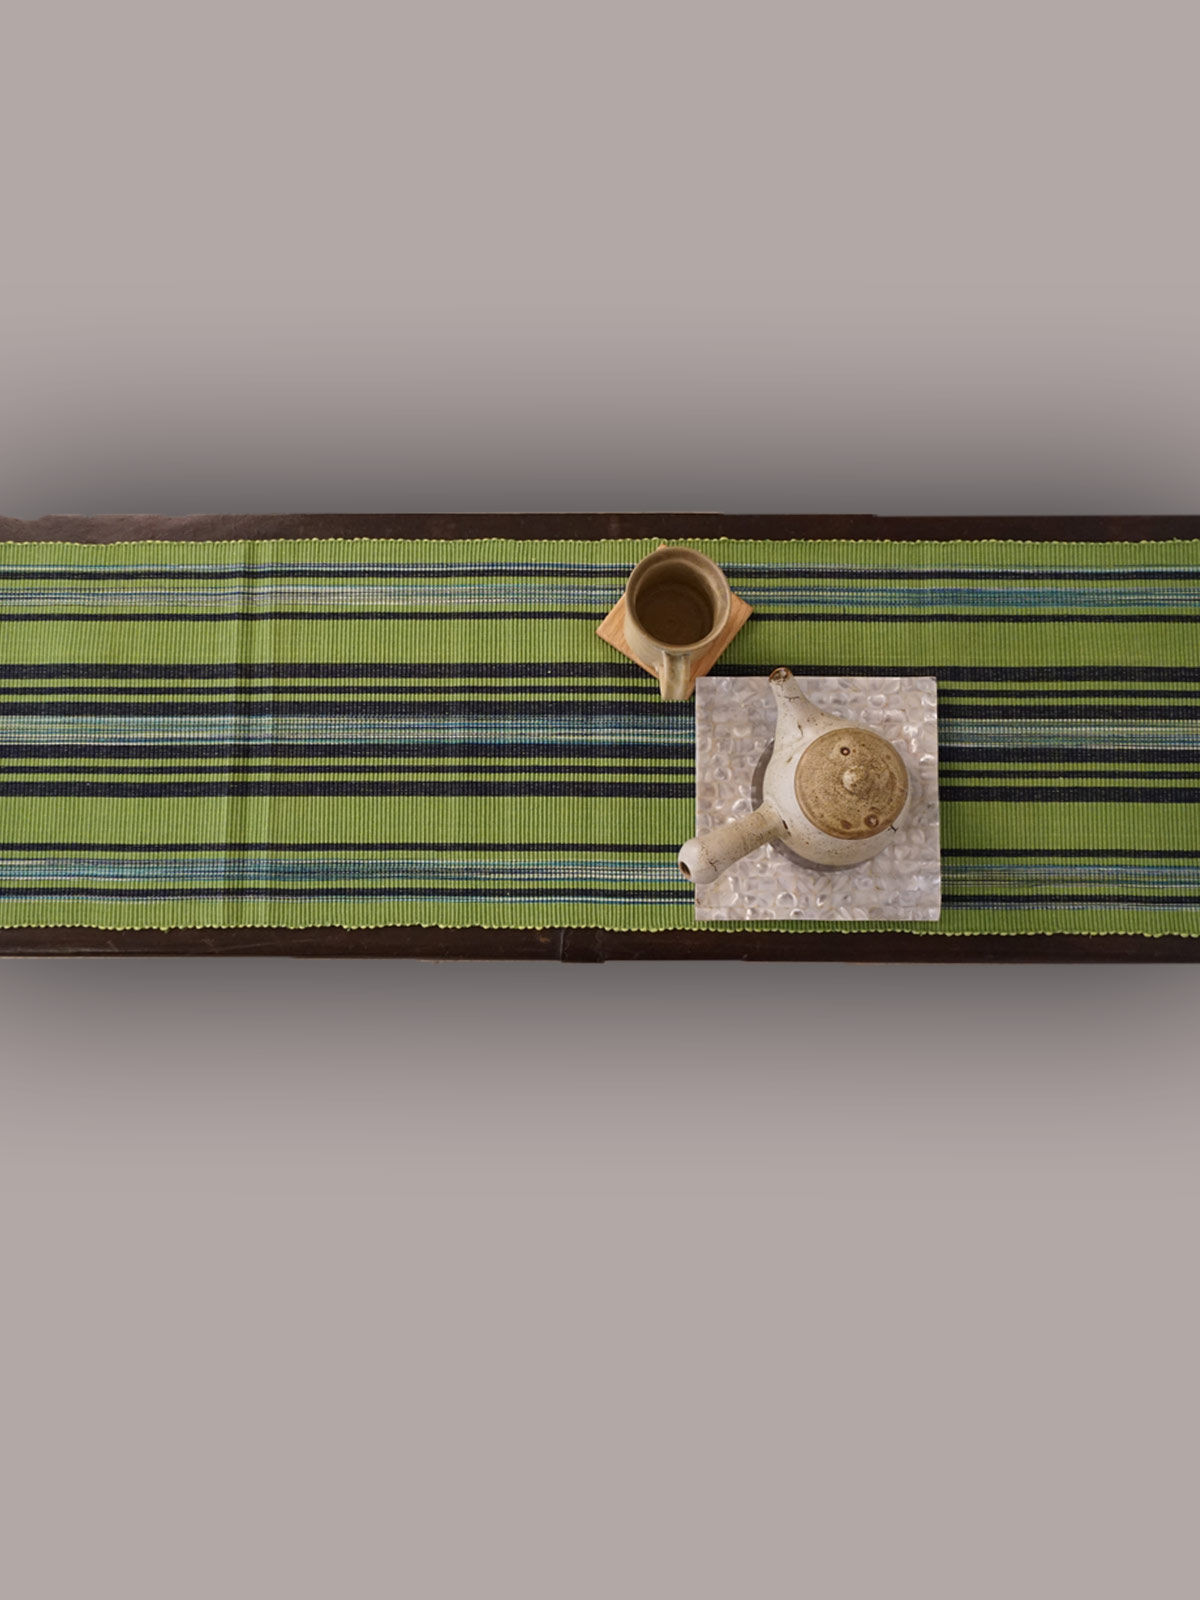 Indian August limegreen black ribbed cotton table runner